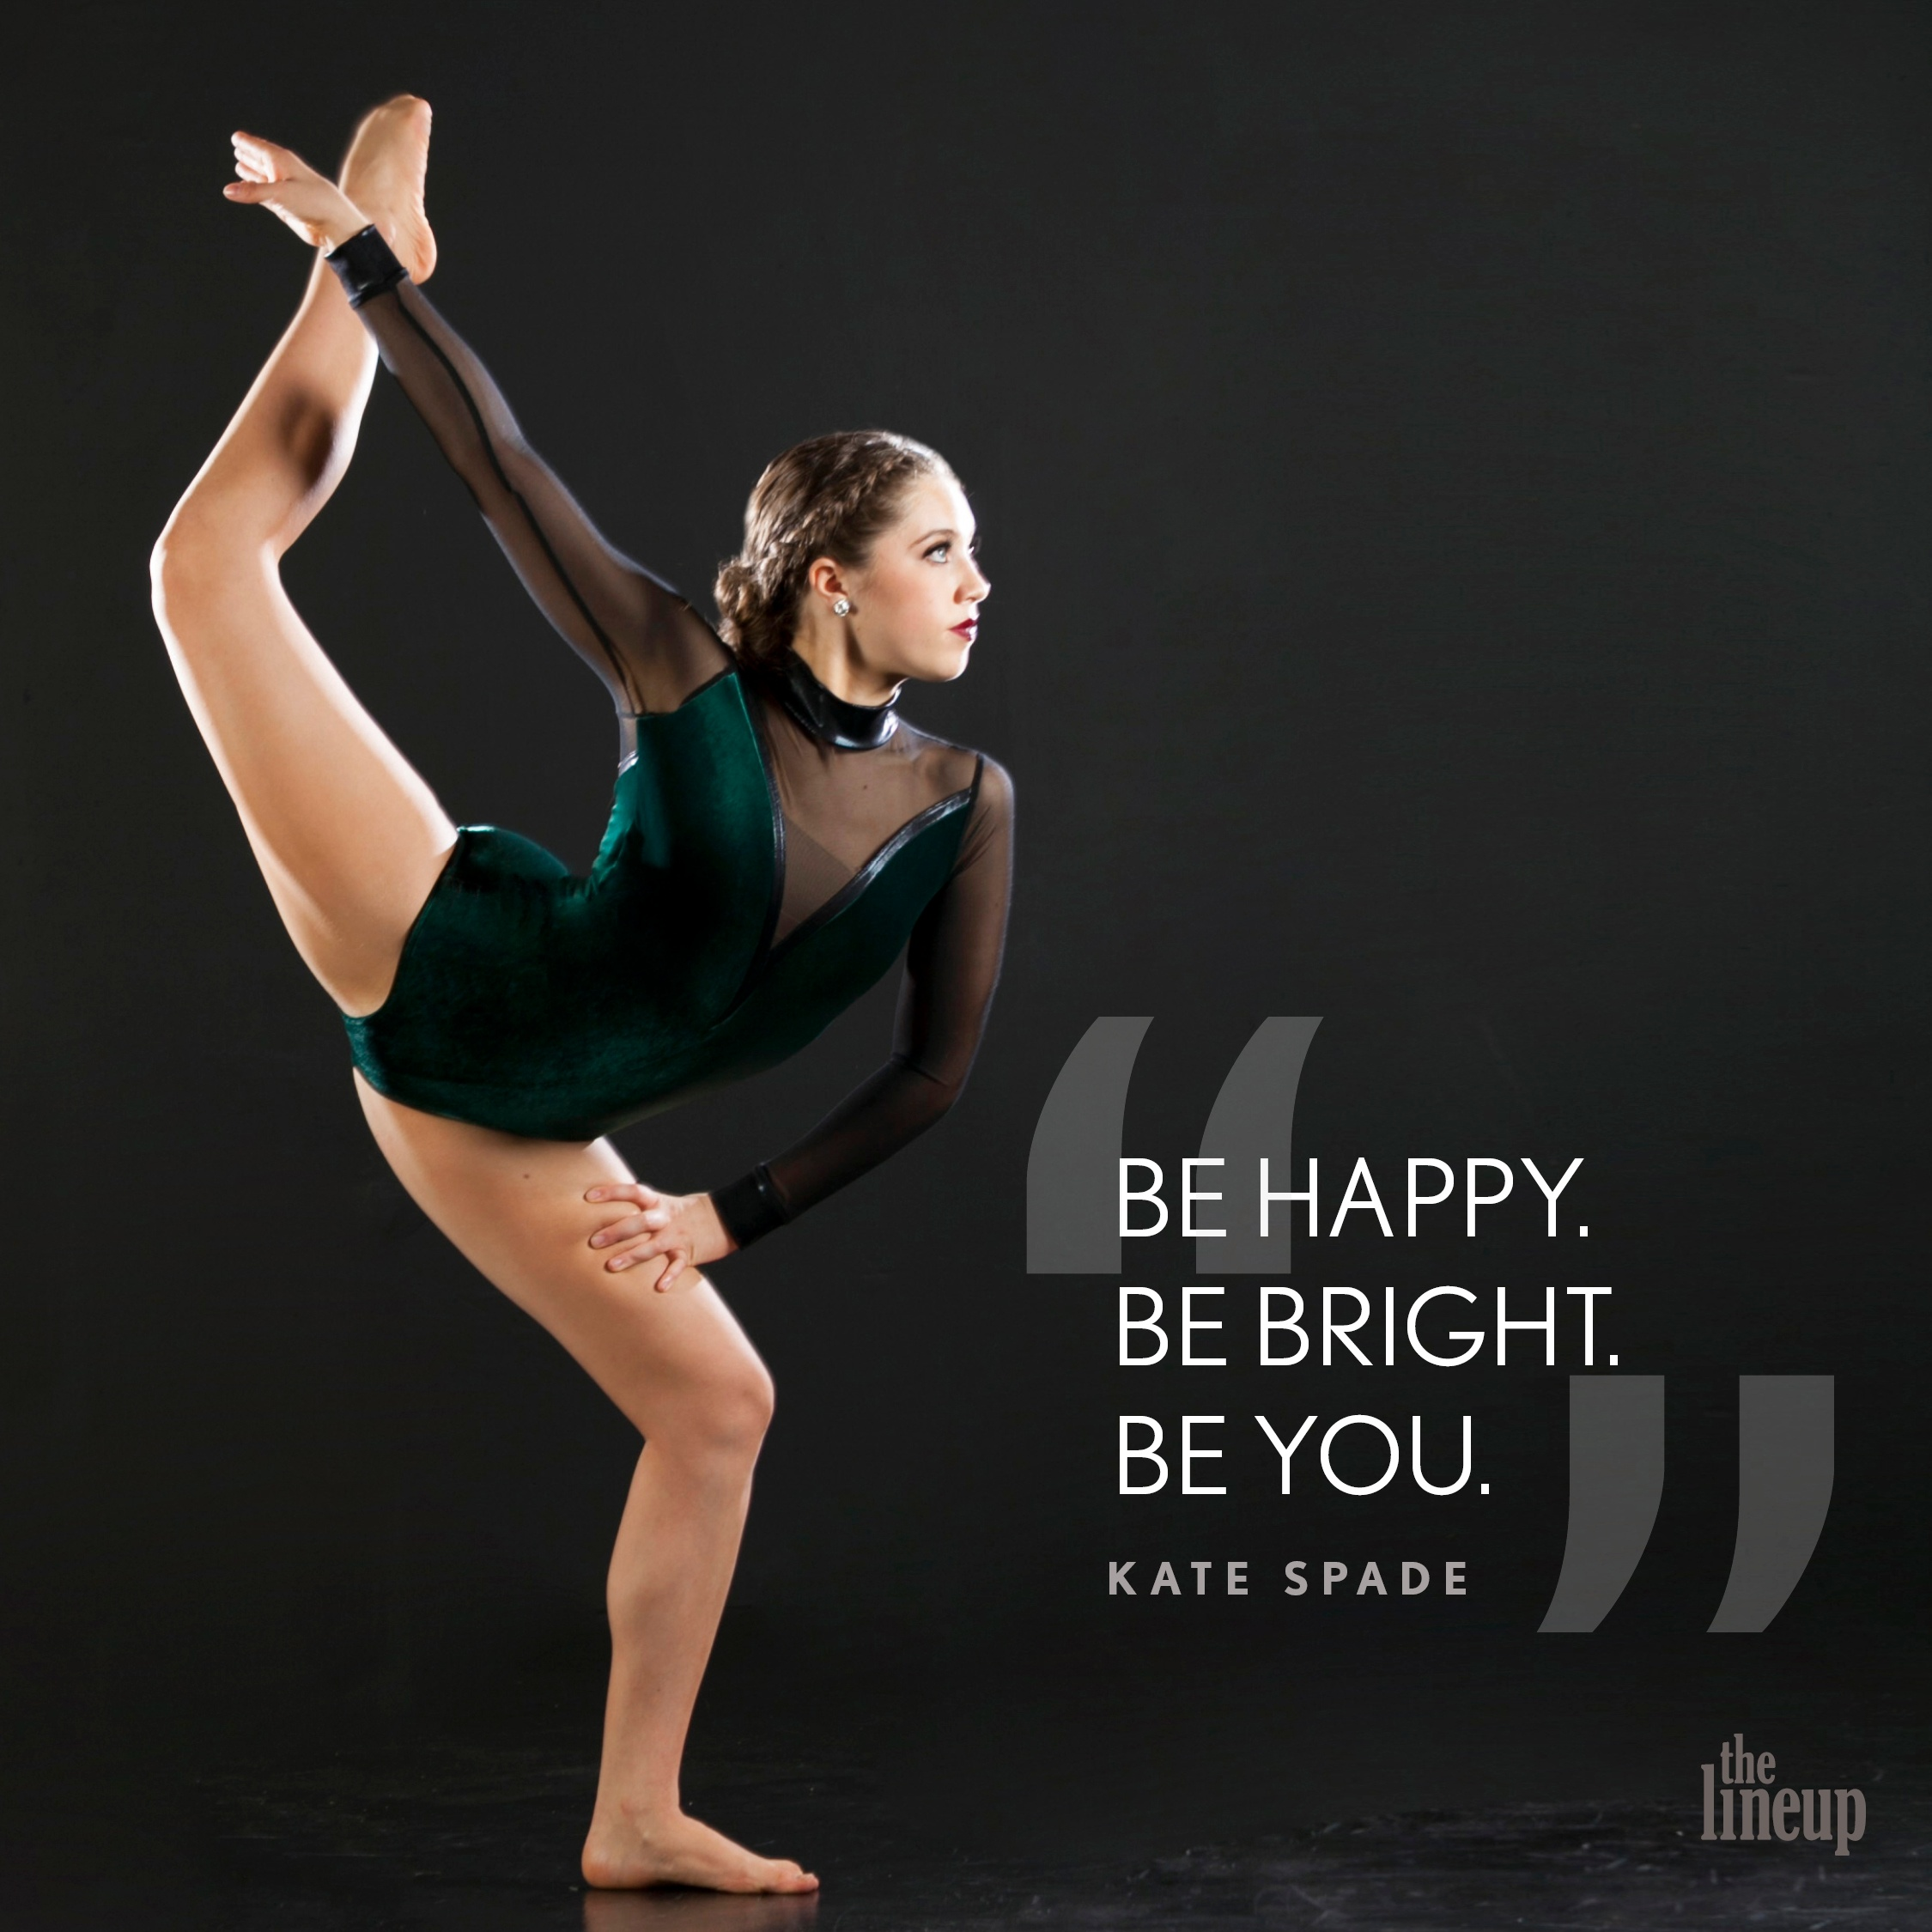 """""""Be Happy. Be Bright. Be You."""" - Kate Spade Motivational Quotes for Dancers"""